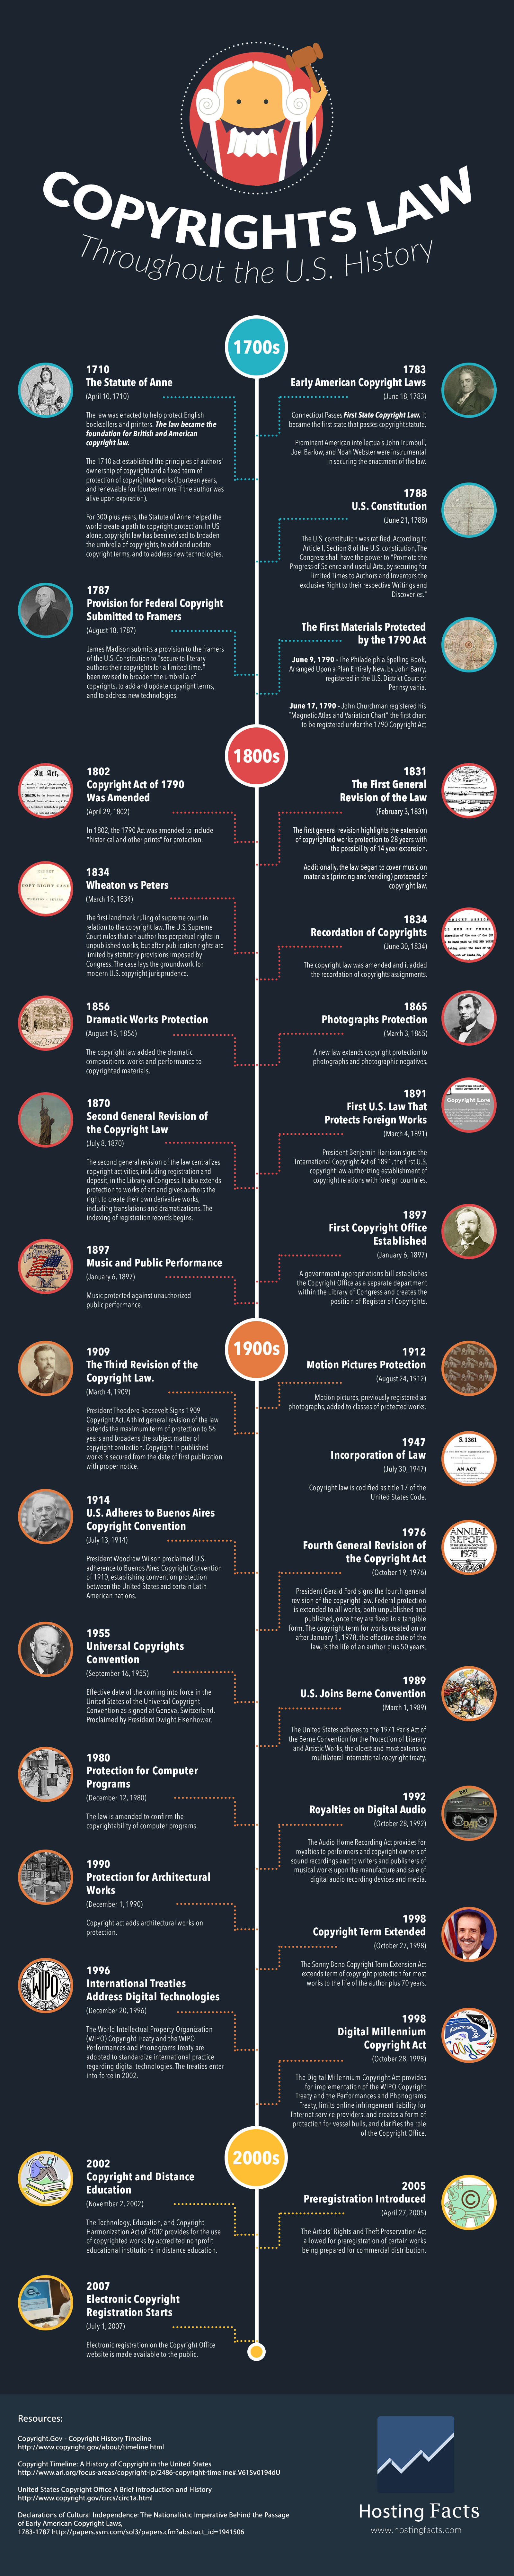 copyright-history-timeline-infographic